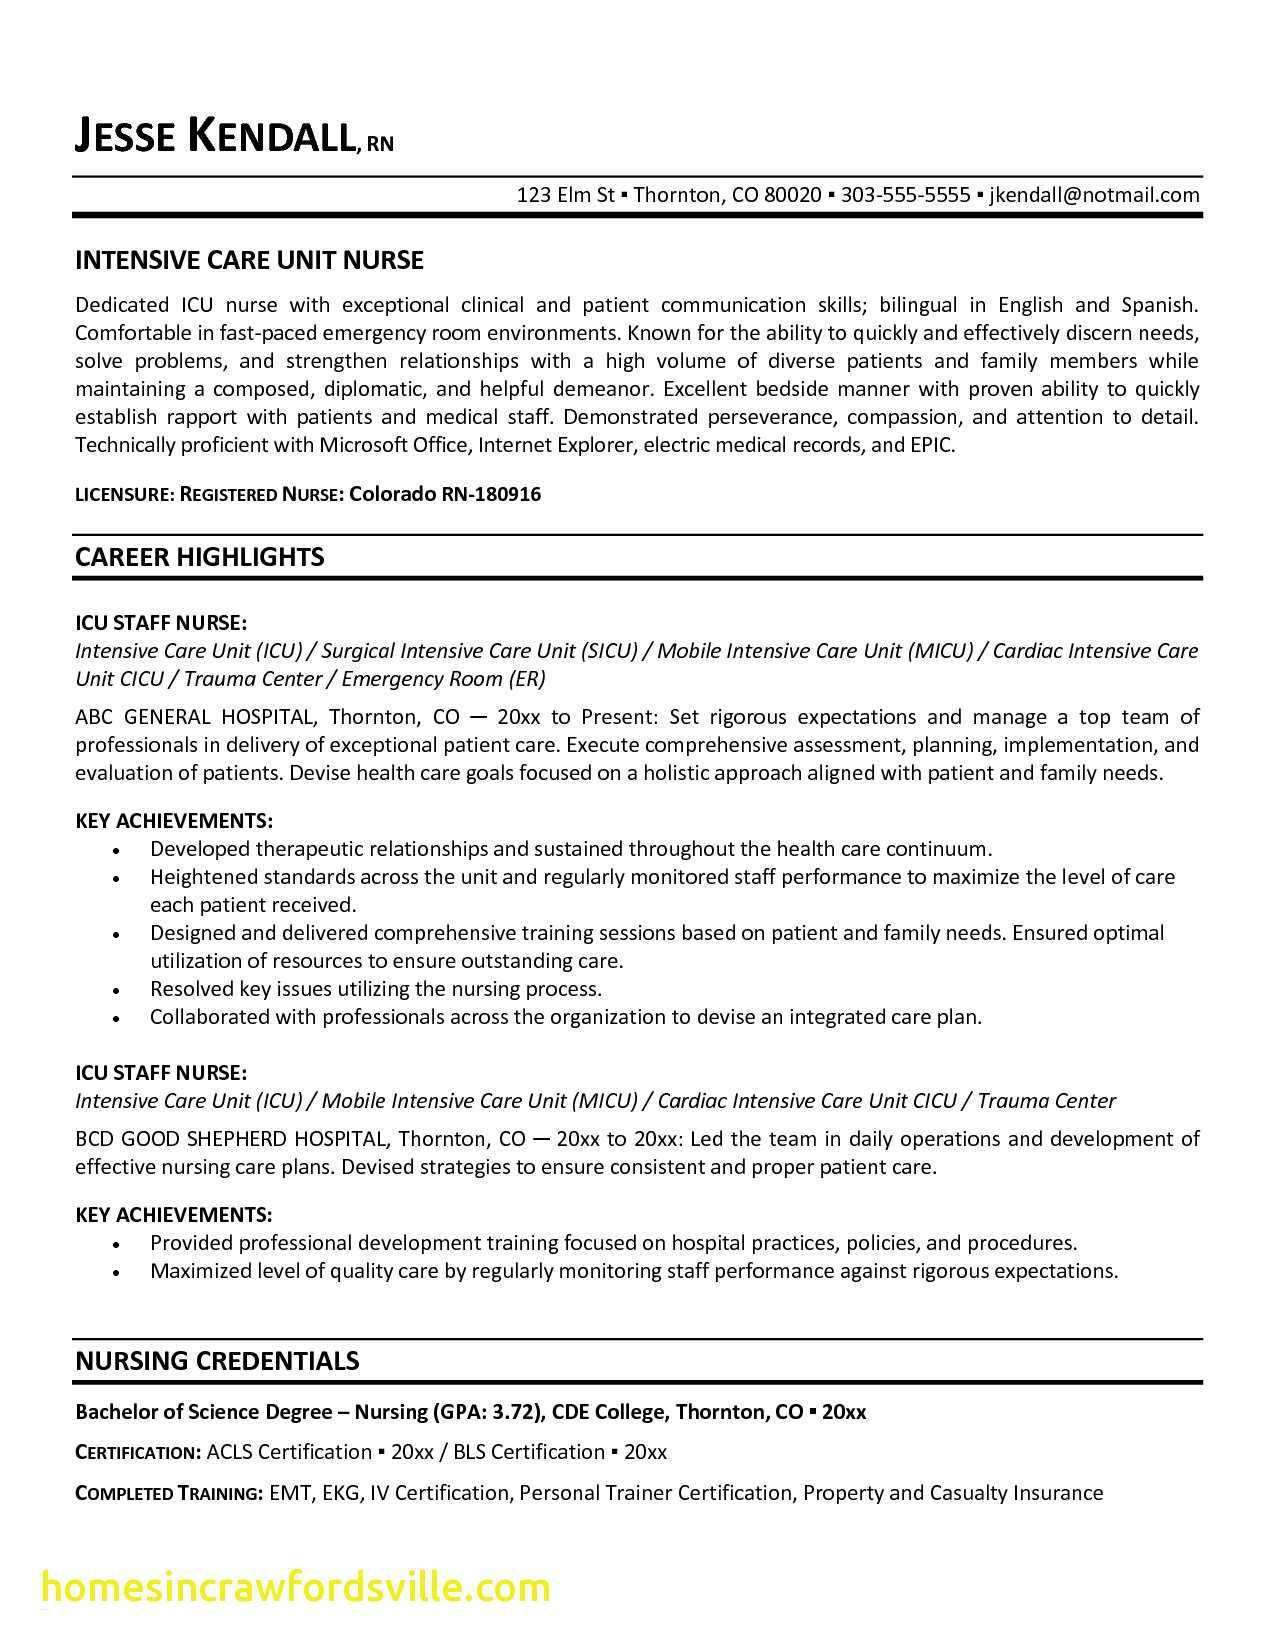 Pin by Personal on resume template | Resume objective sample ...